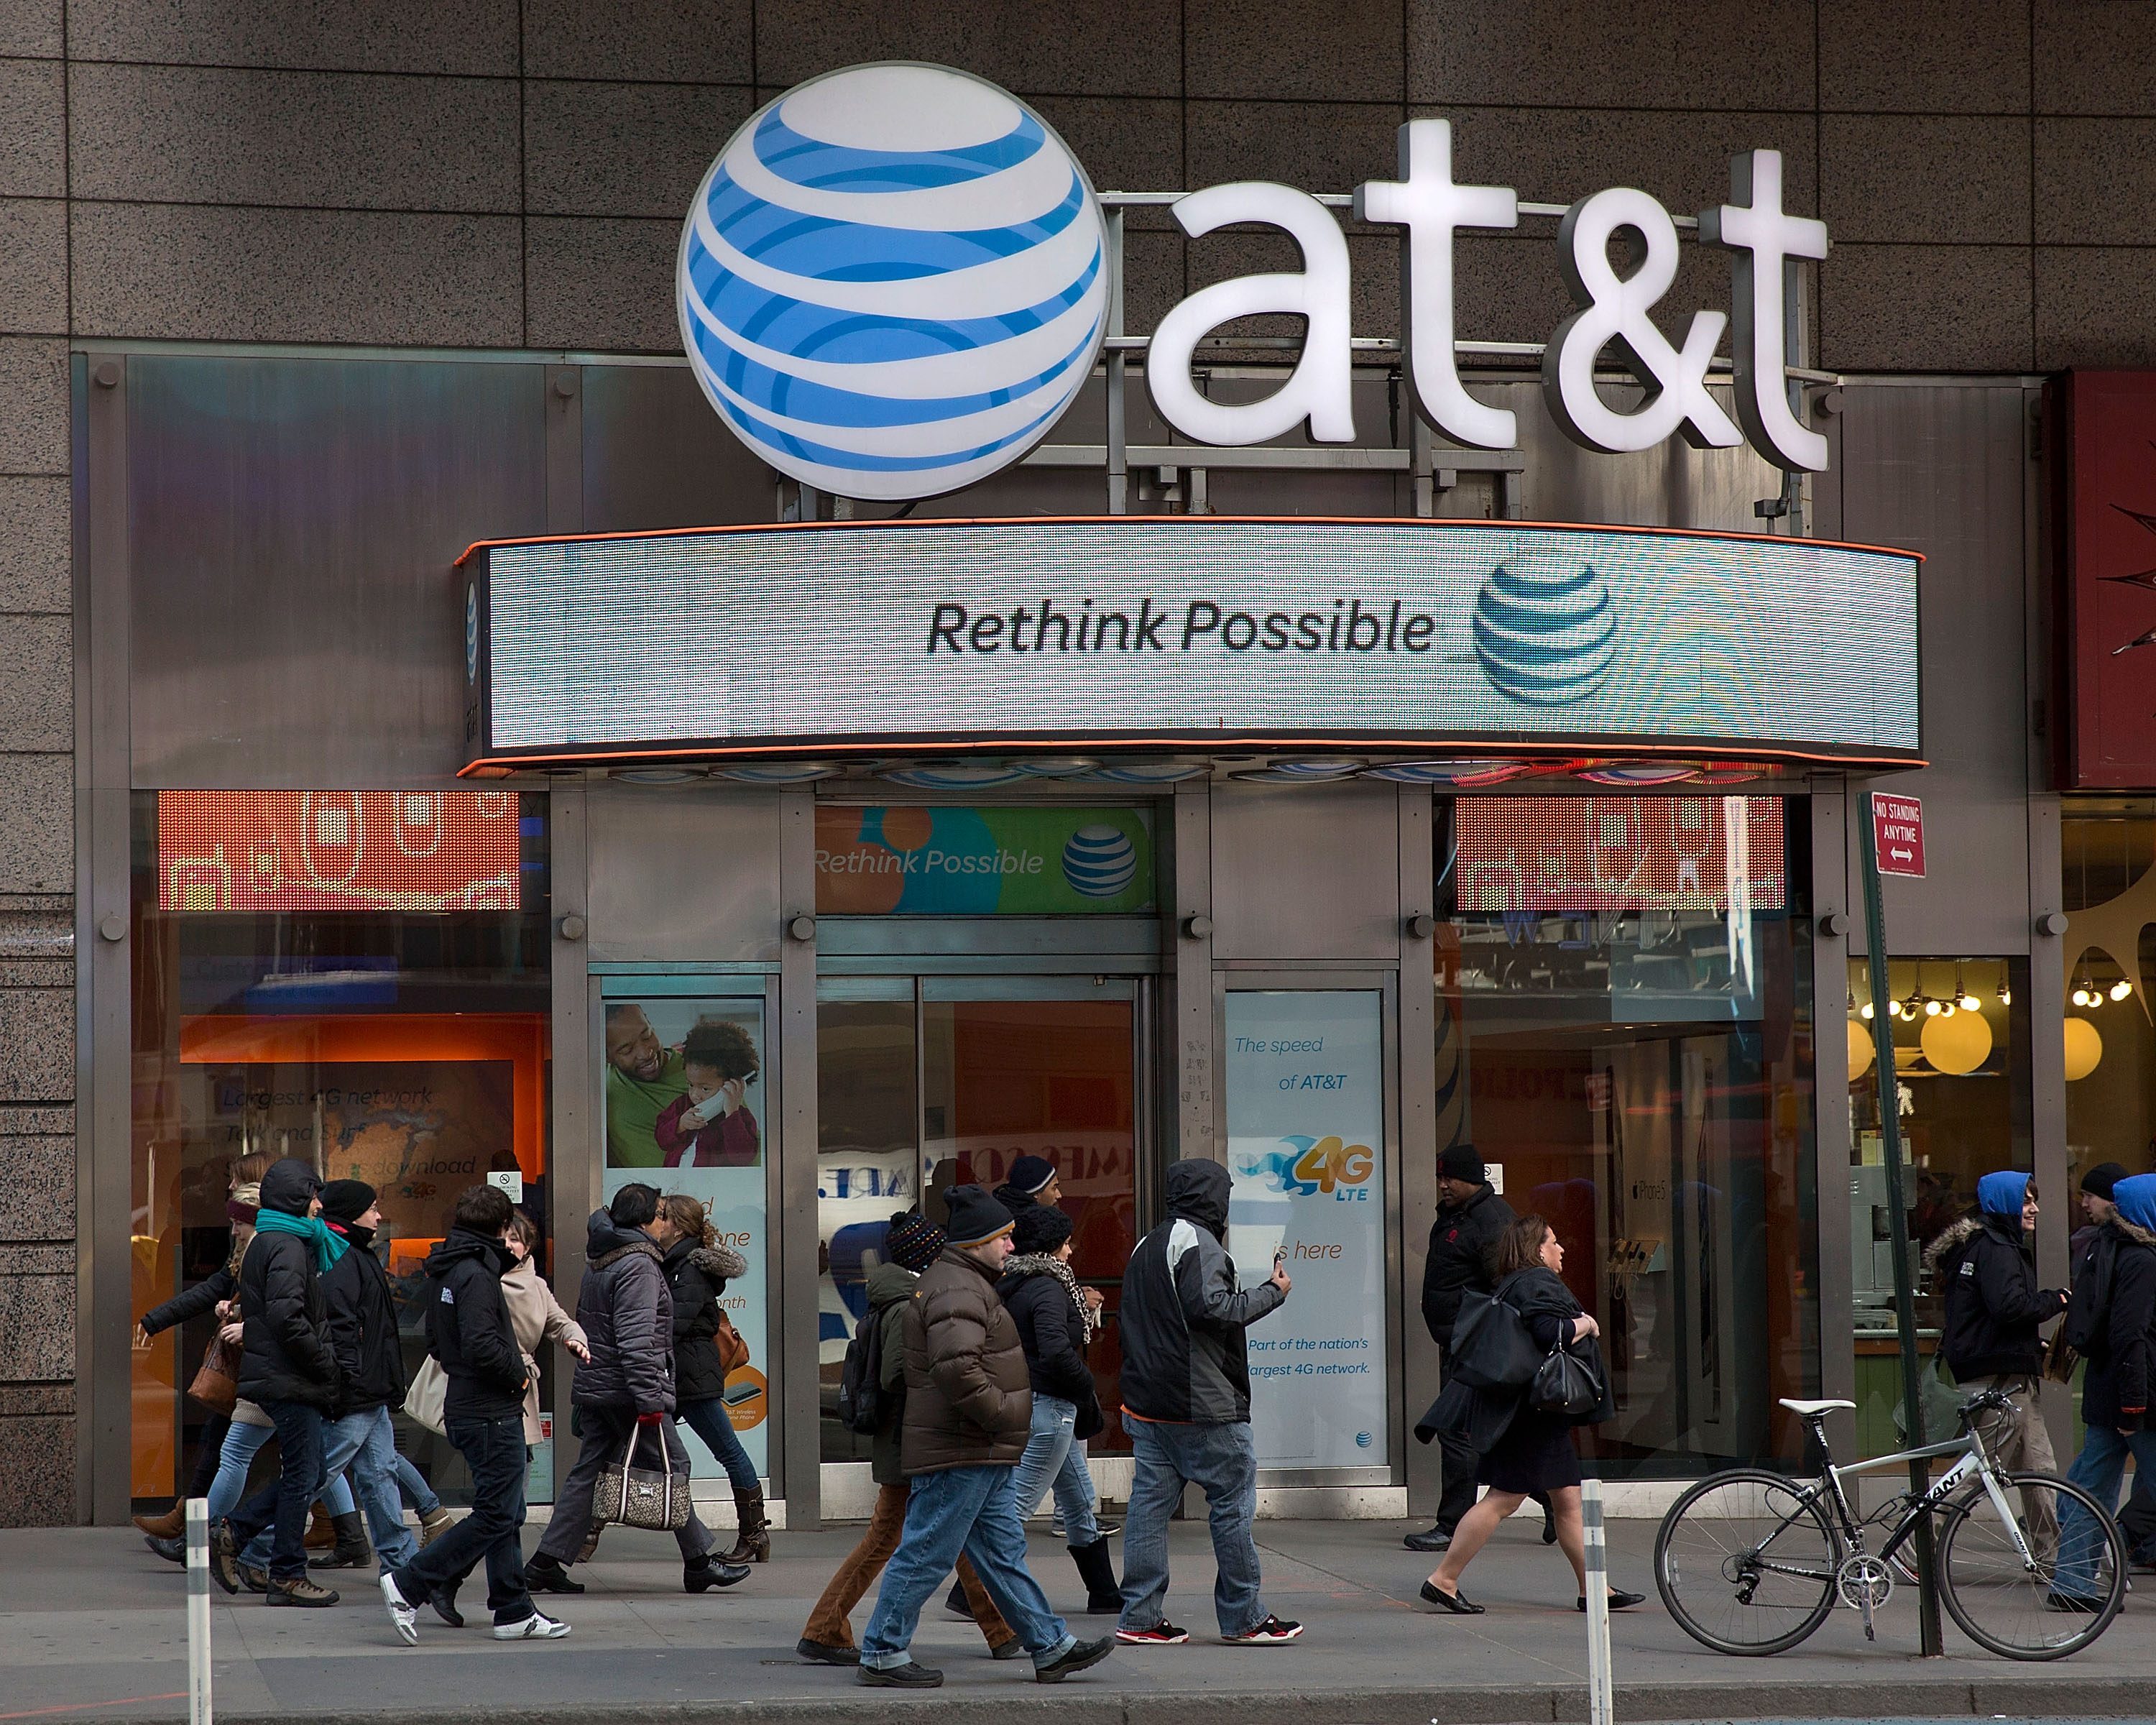 A view of the exterior of the AT&T store in Times Sqaure on February 21, 2013 in New York City.